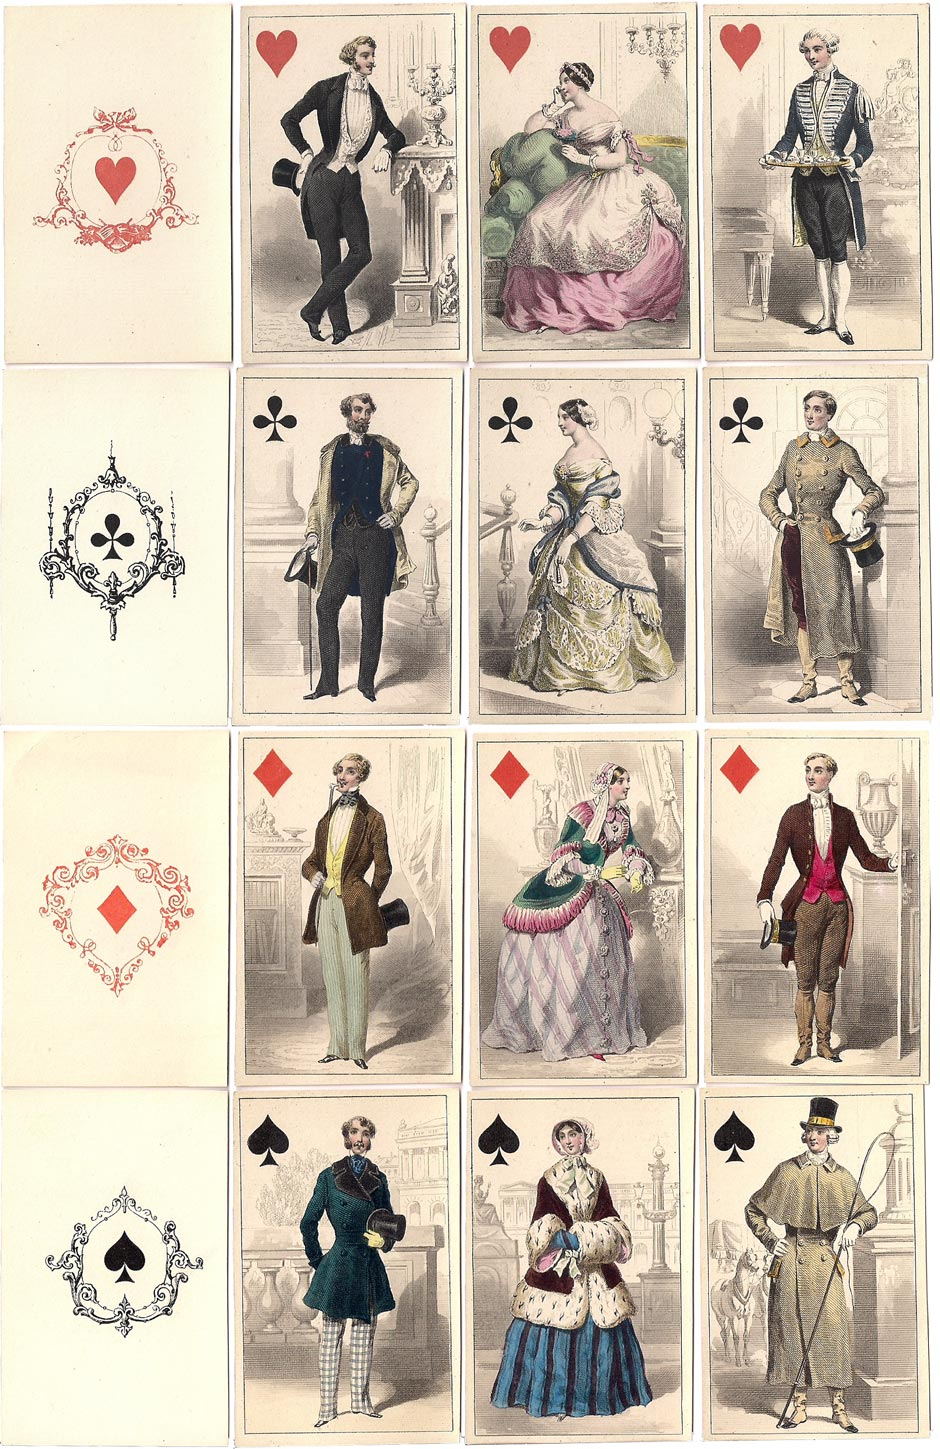 French Costume playing cards published by O. Gibert, Paris, c.1850